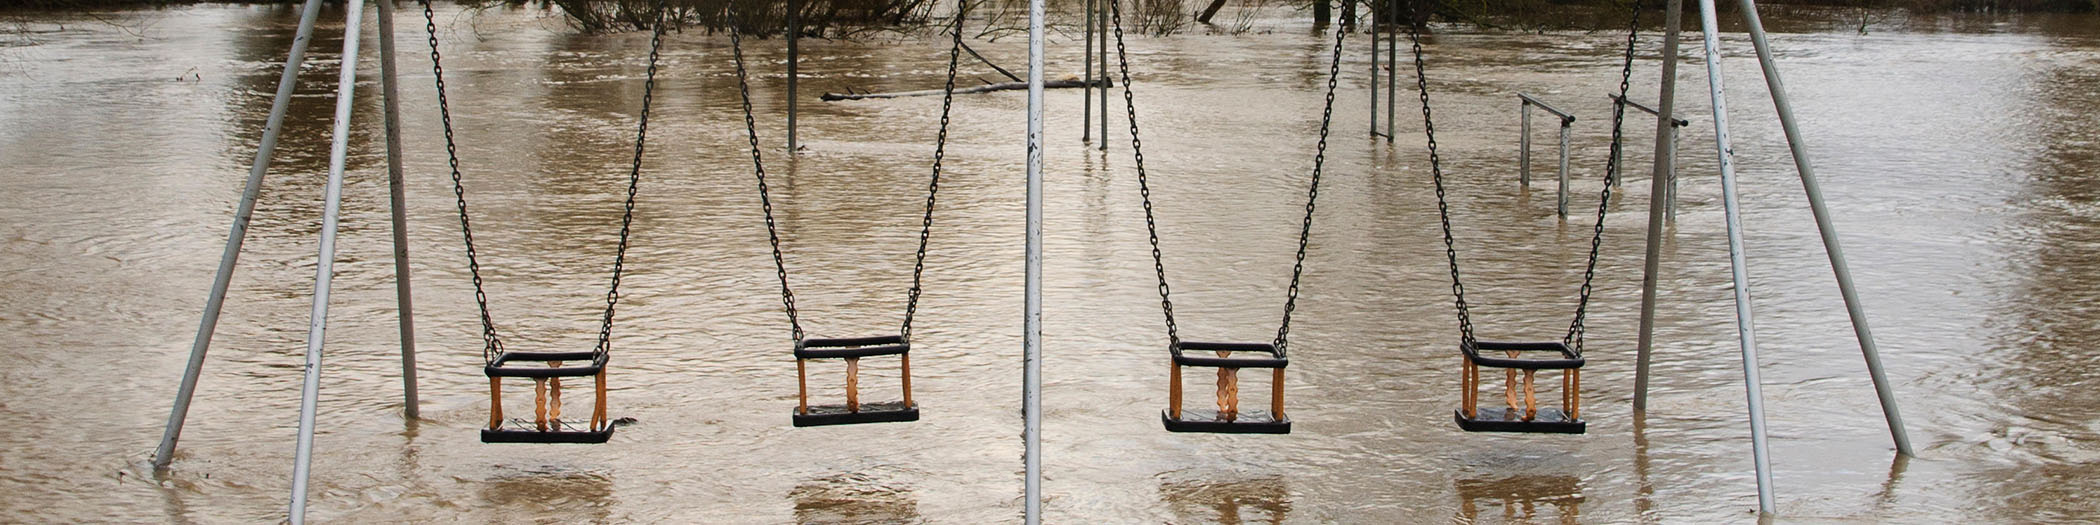 swings resize